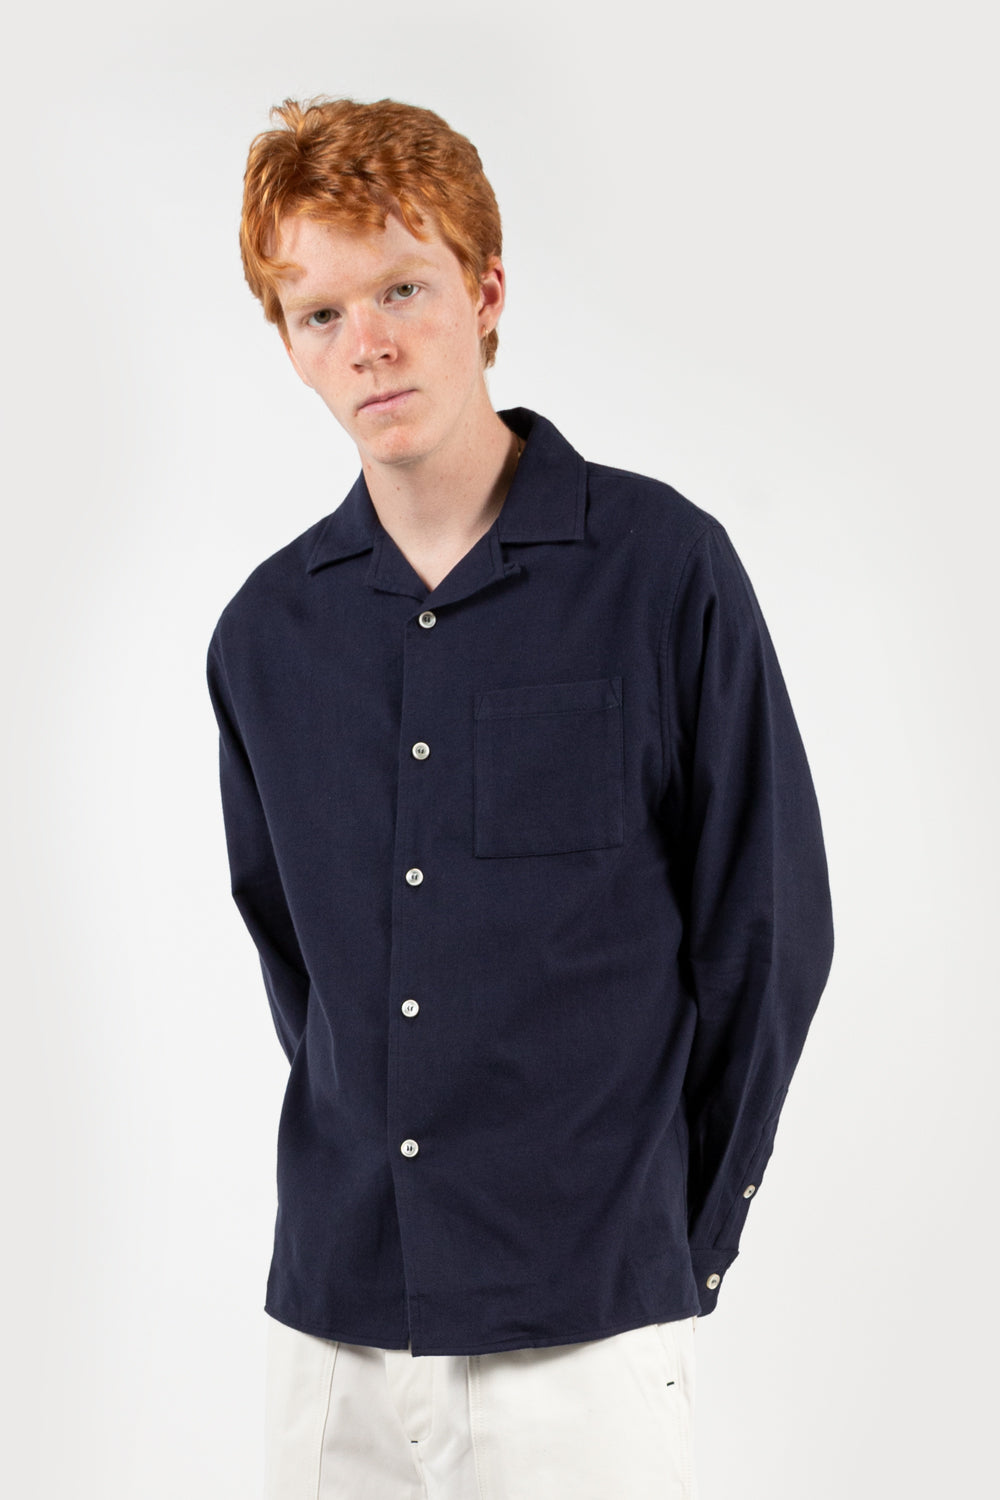 reception bowling ls shirt in dark navy